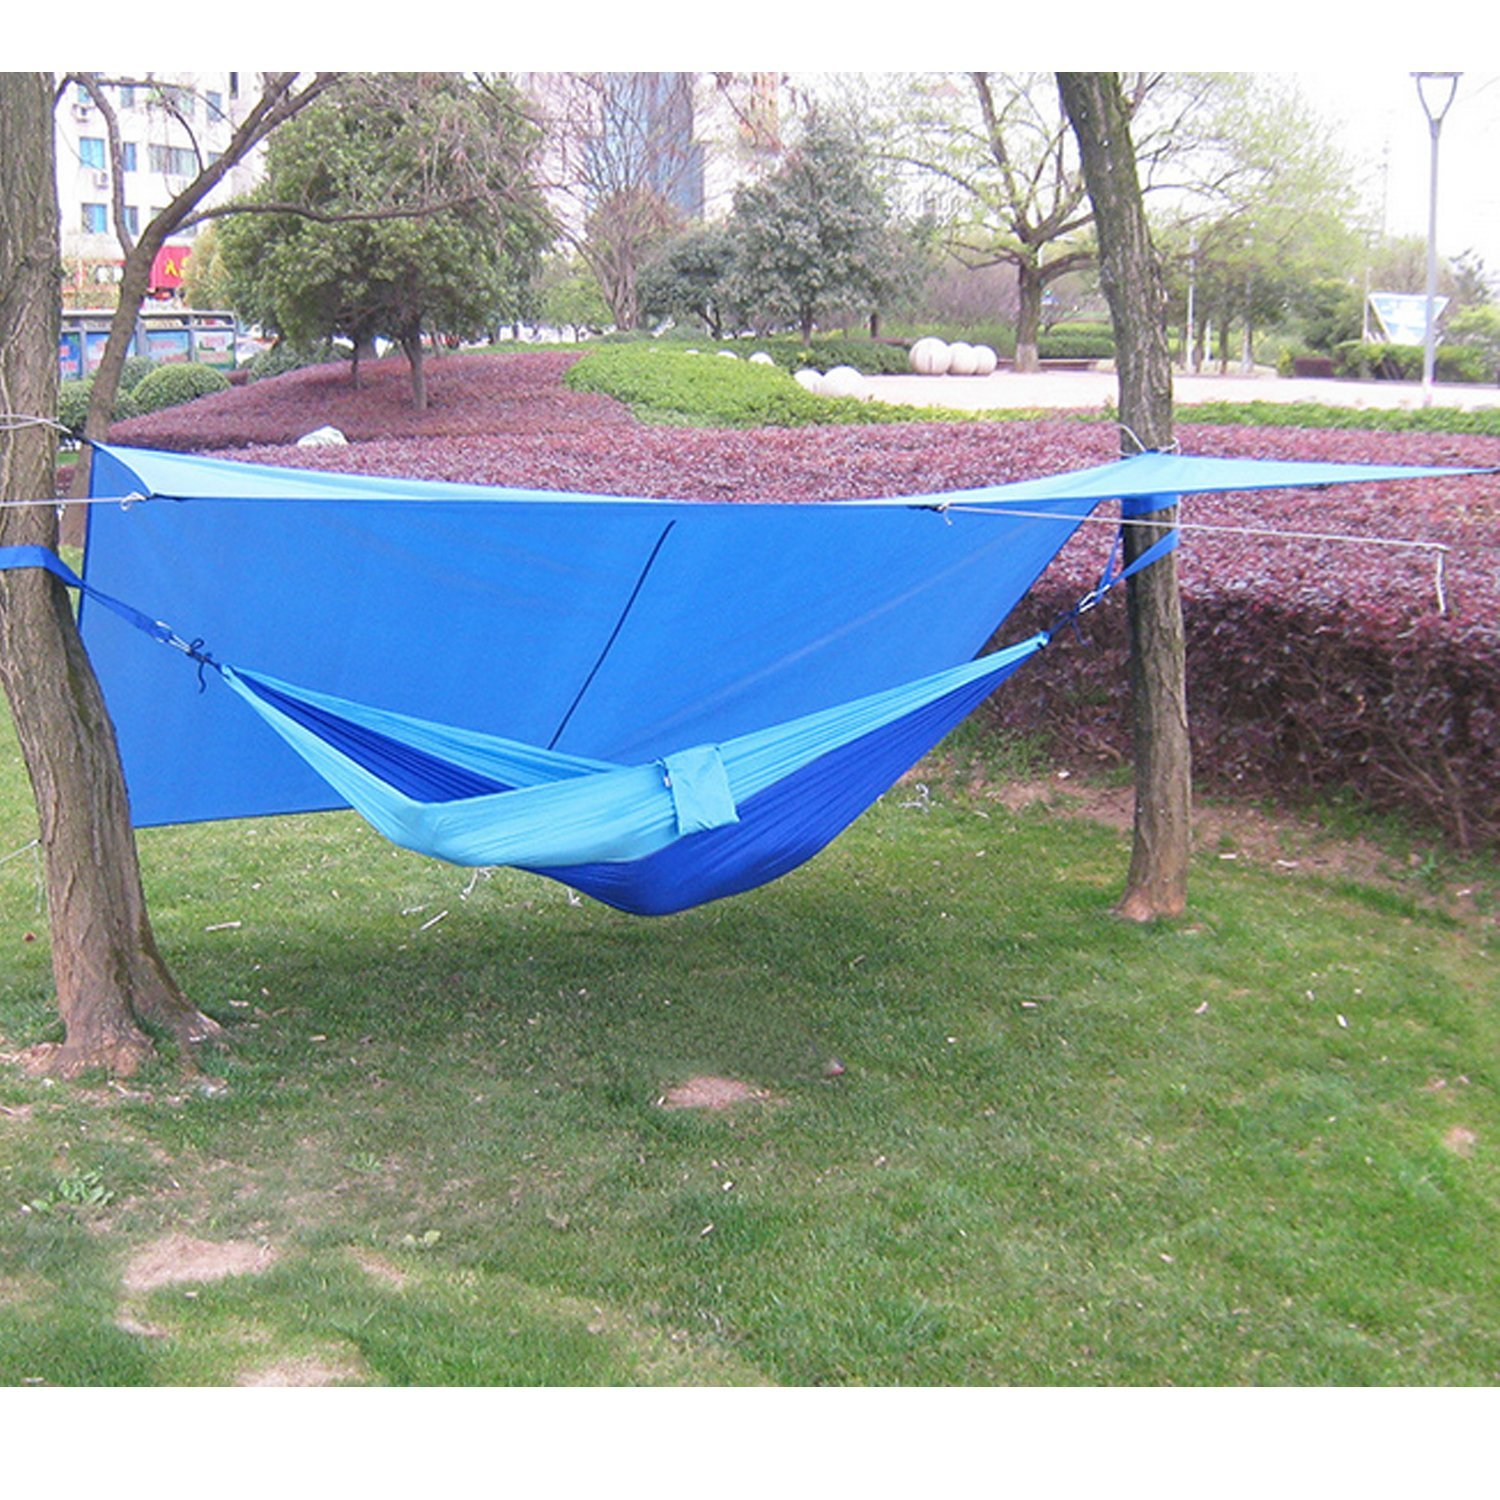 HMLifestyle-Large Rain Tarp Shelter Waterproof Hammock Tarp Lightweight for Camping Tent Tarp,Sunshade Hammock Rain Fly10x10 Ft with Carry Bag (Blue)